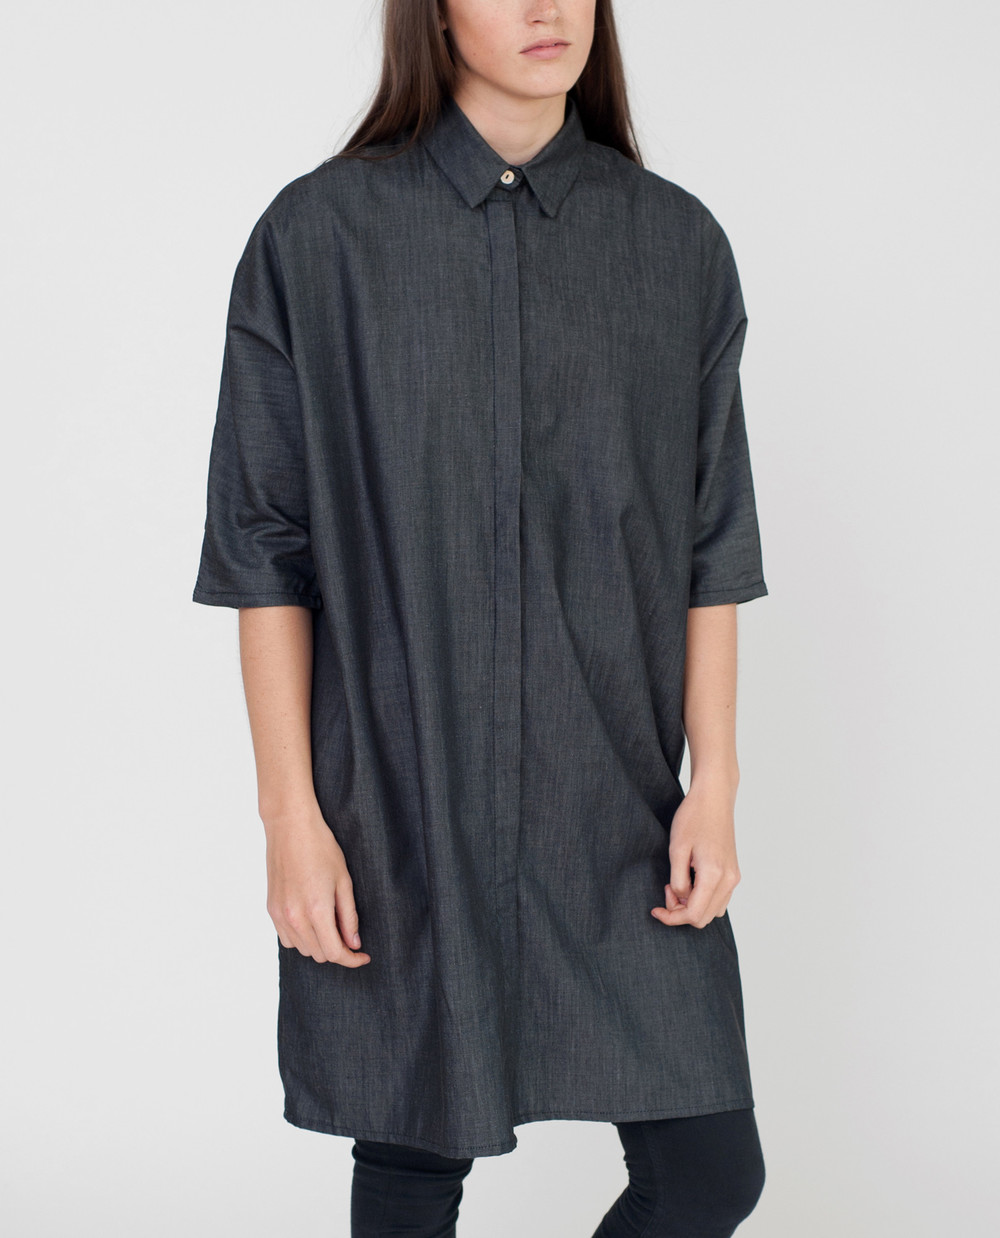 Madeline-Beaumont-Organic-Cotton-Chambray-Shirt-In-Black-1.jpg